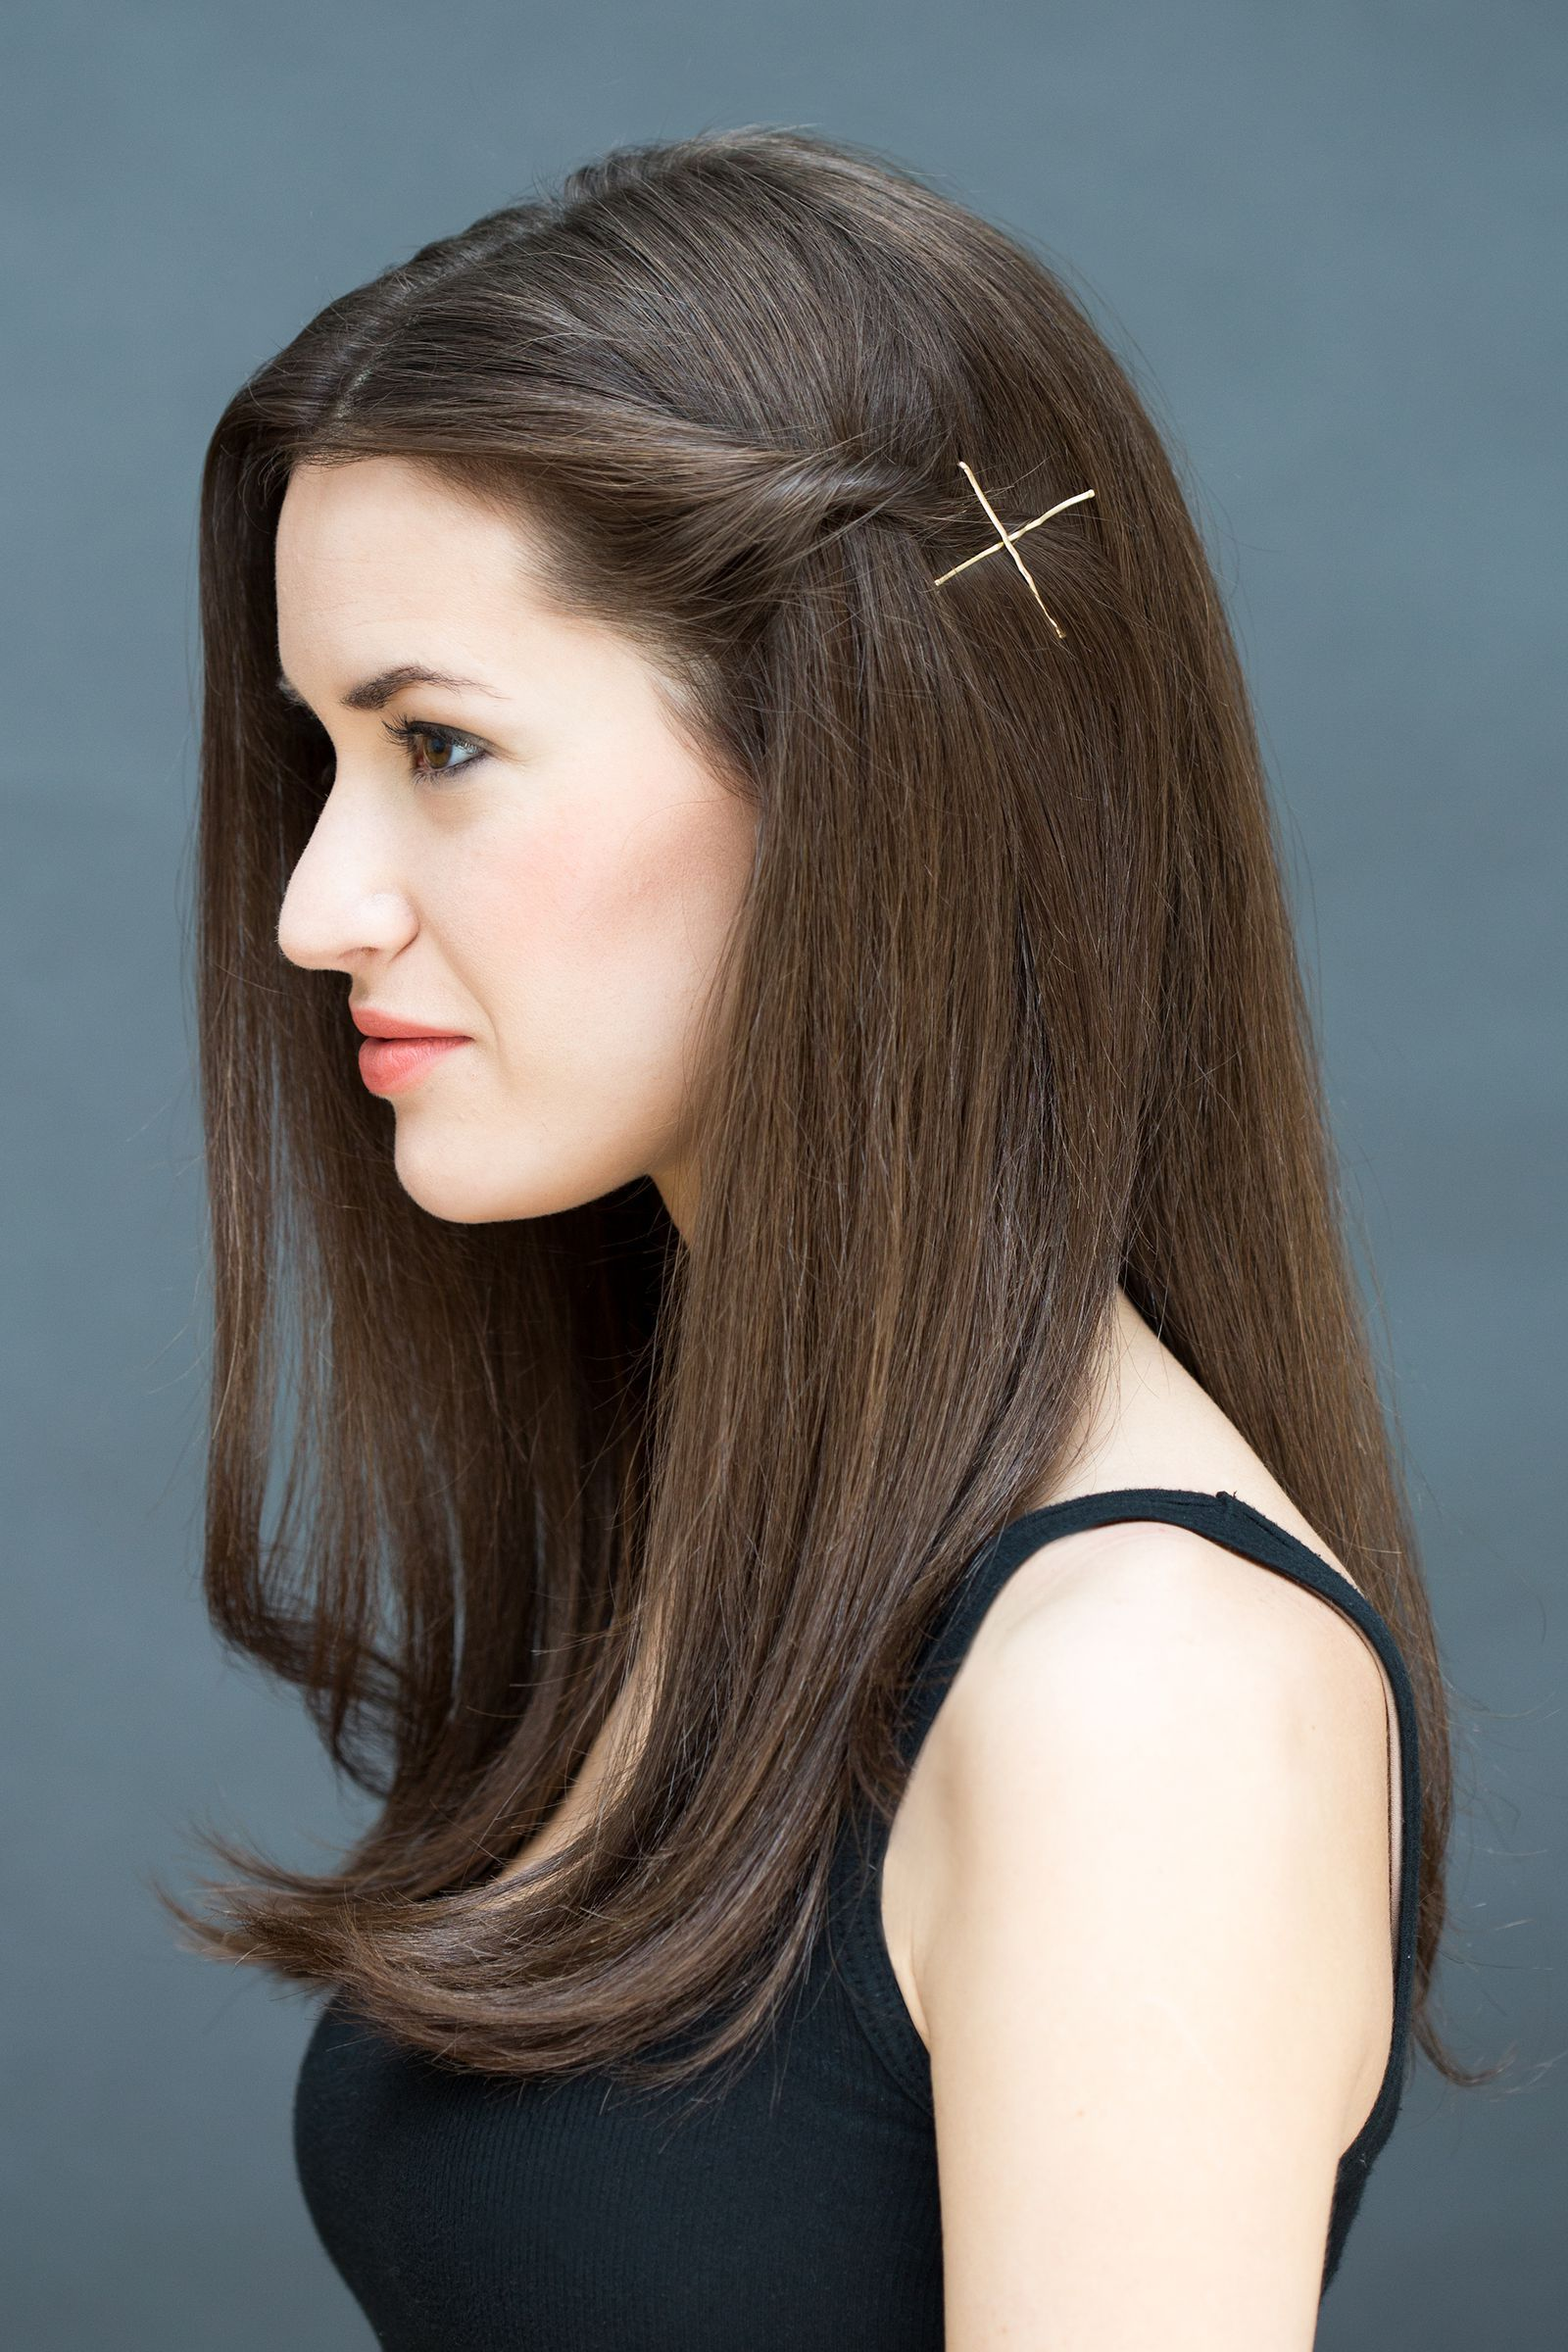 The twistandpin cosmopolitan easy hairstyles in